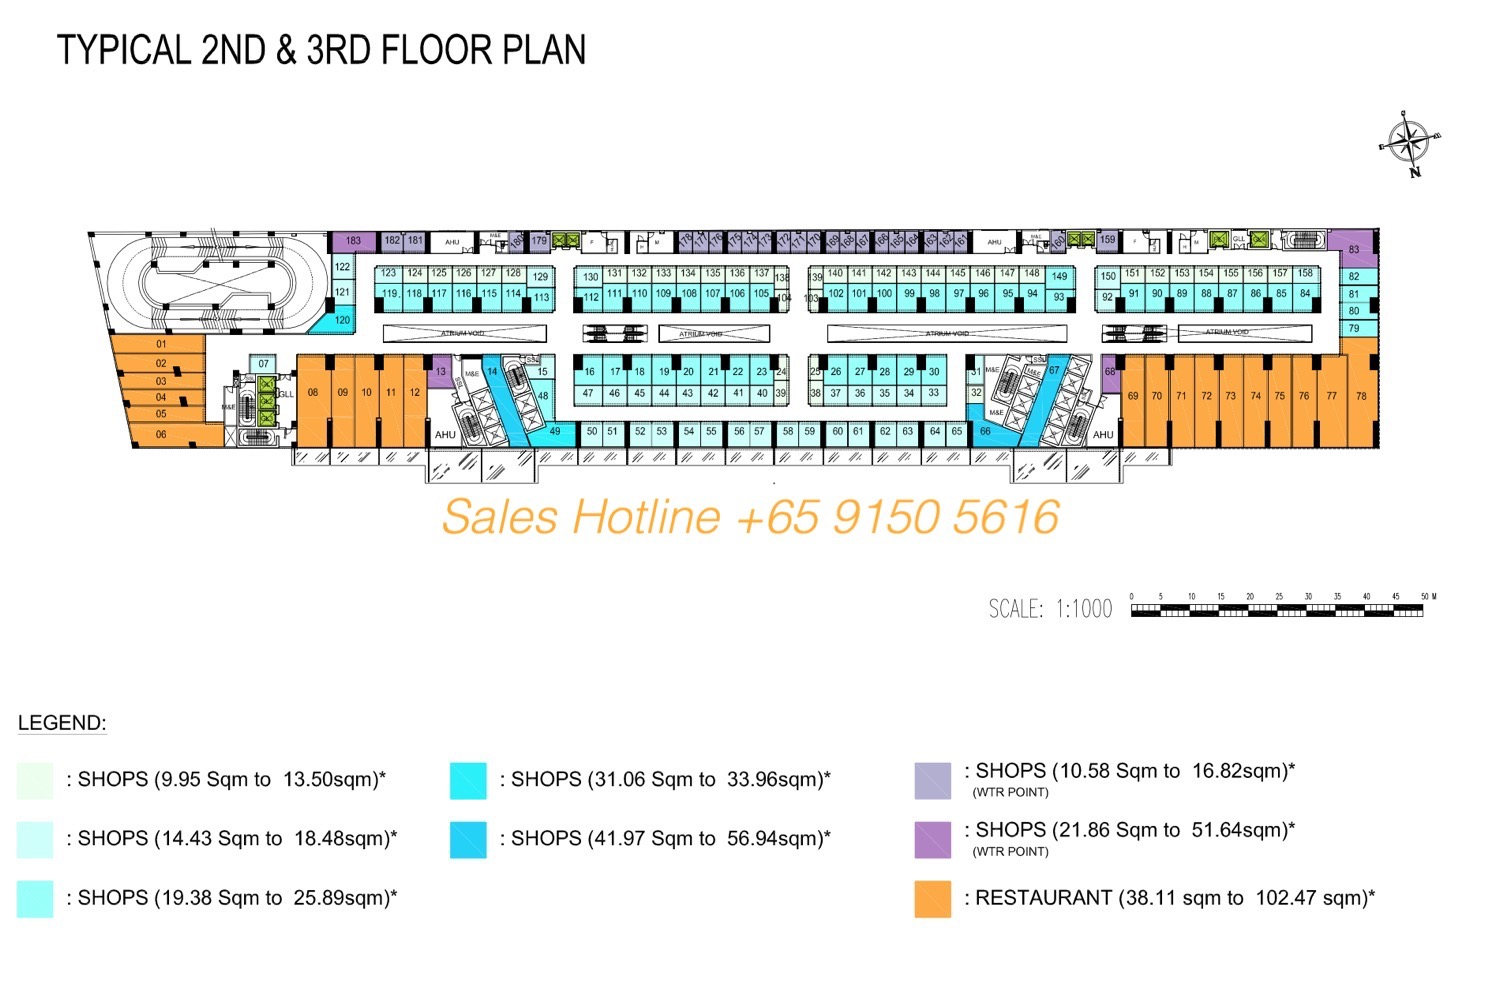 The Bridge Camobodia - Retail Site Plan 2nd & 3rd Floor